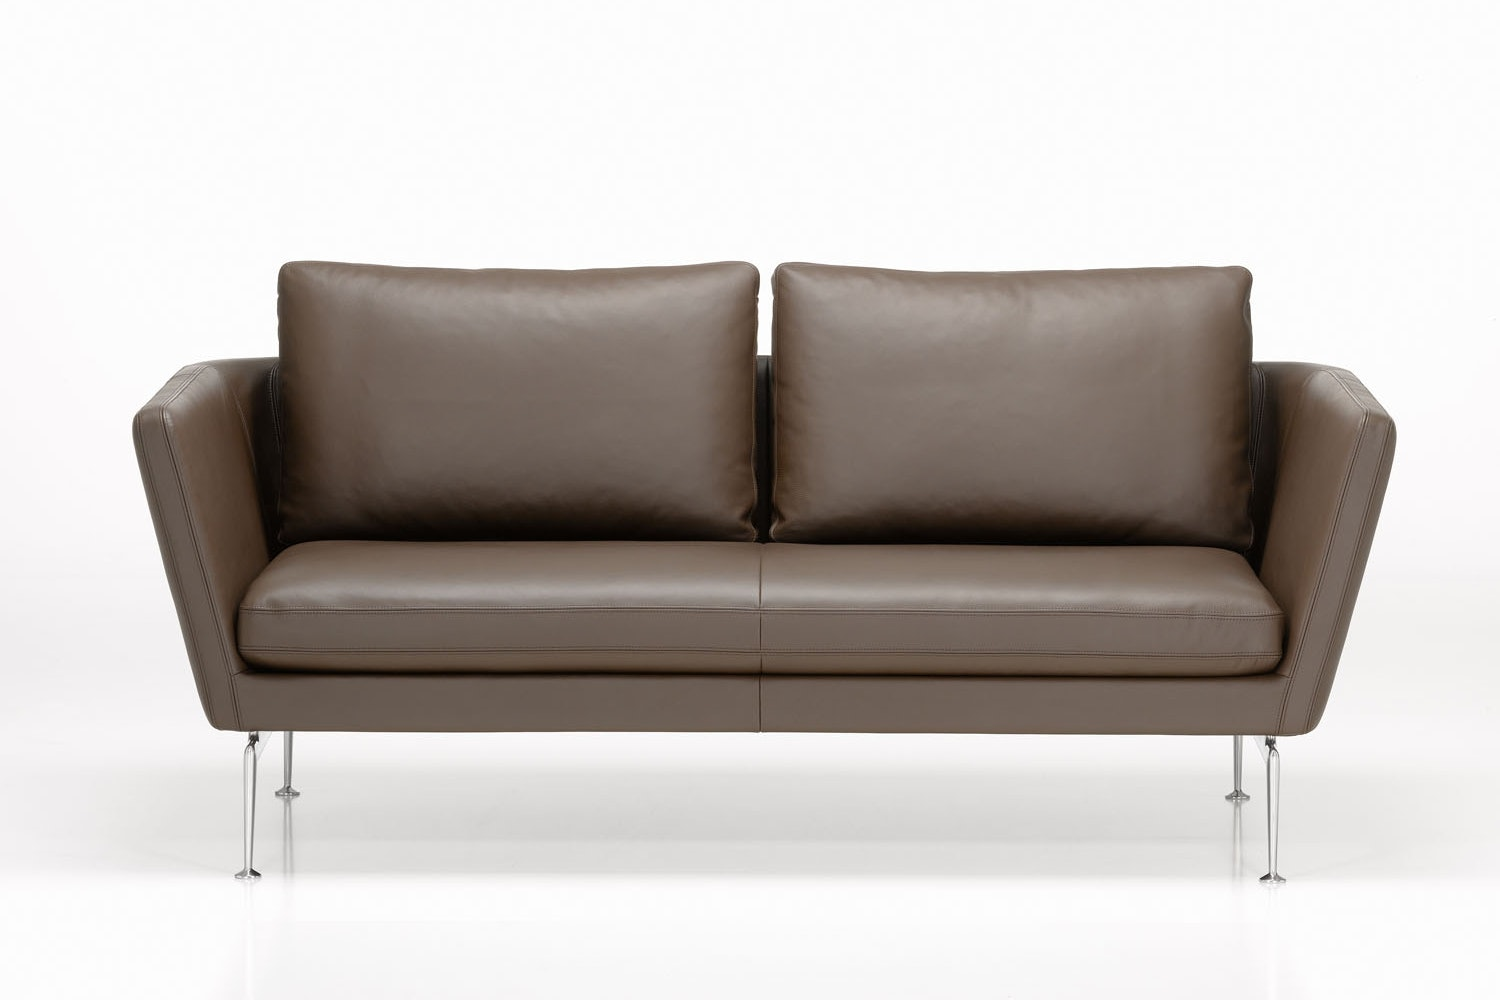 Suita Sofa by Antonio Citterio for Vitra